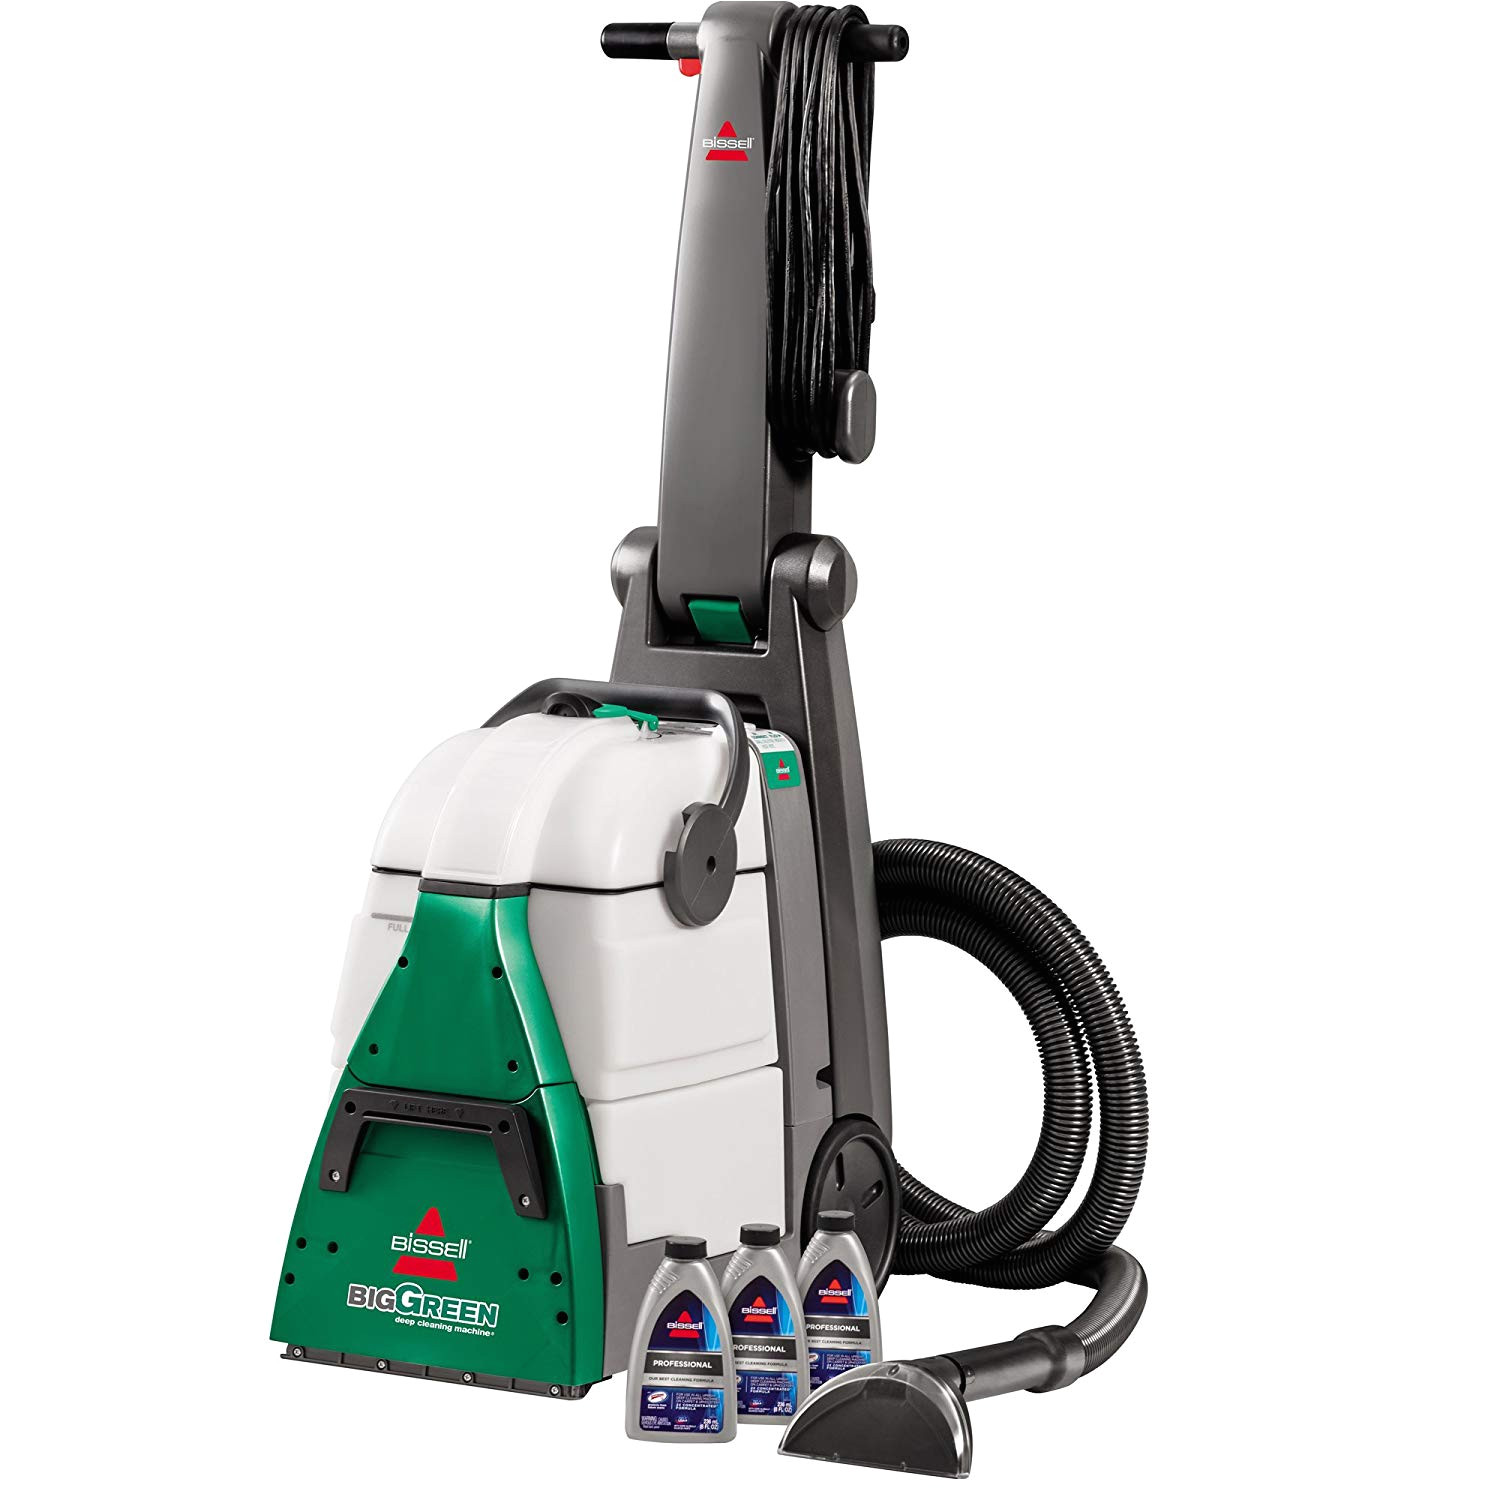 amazon com bissell big green professional carpet cleaner machine 86t3 home kitchen